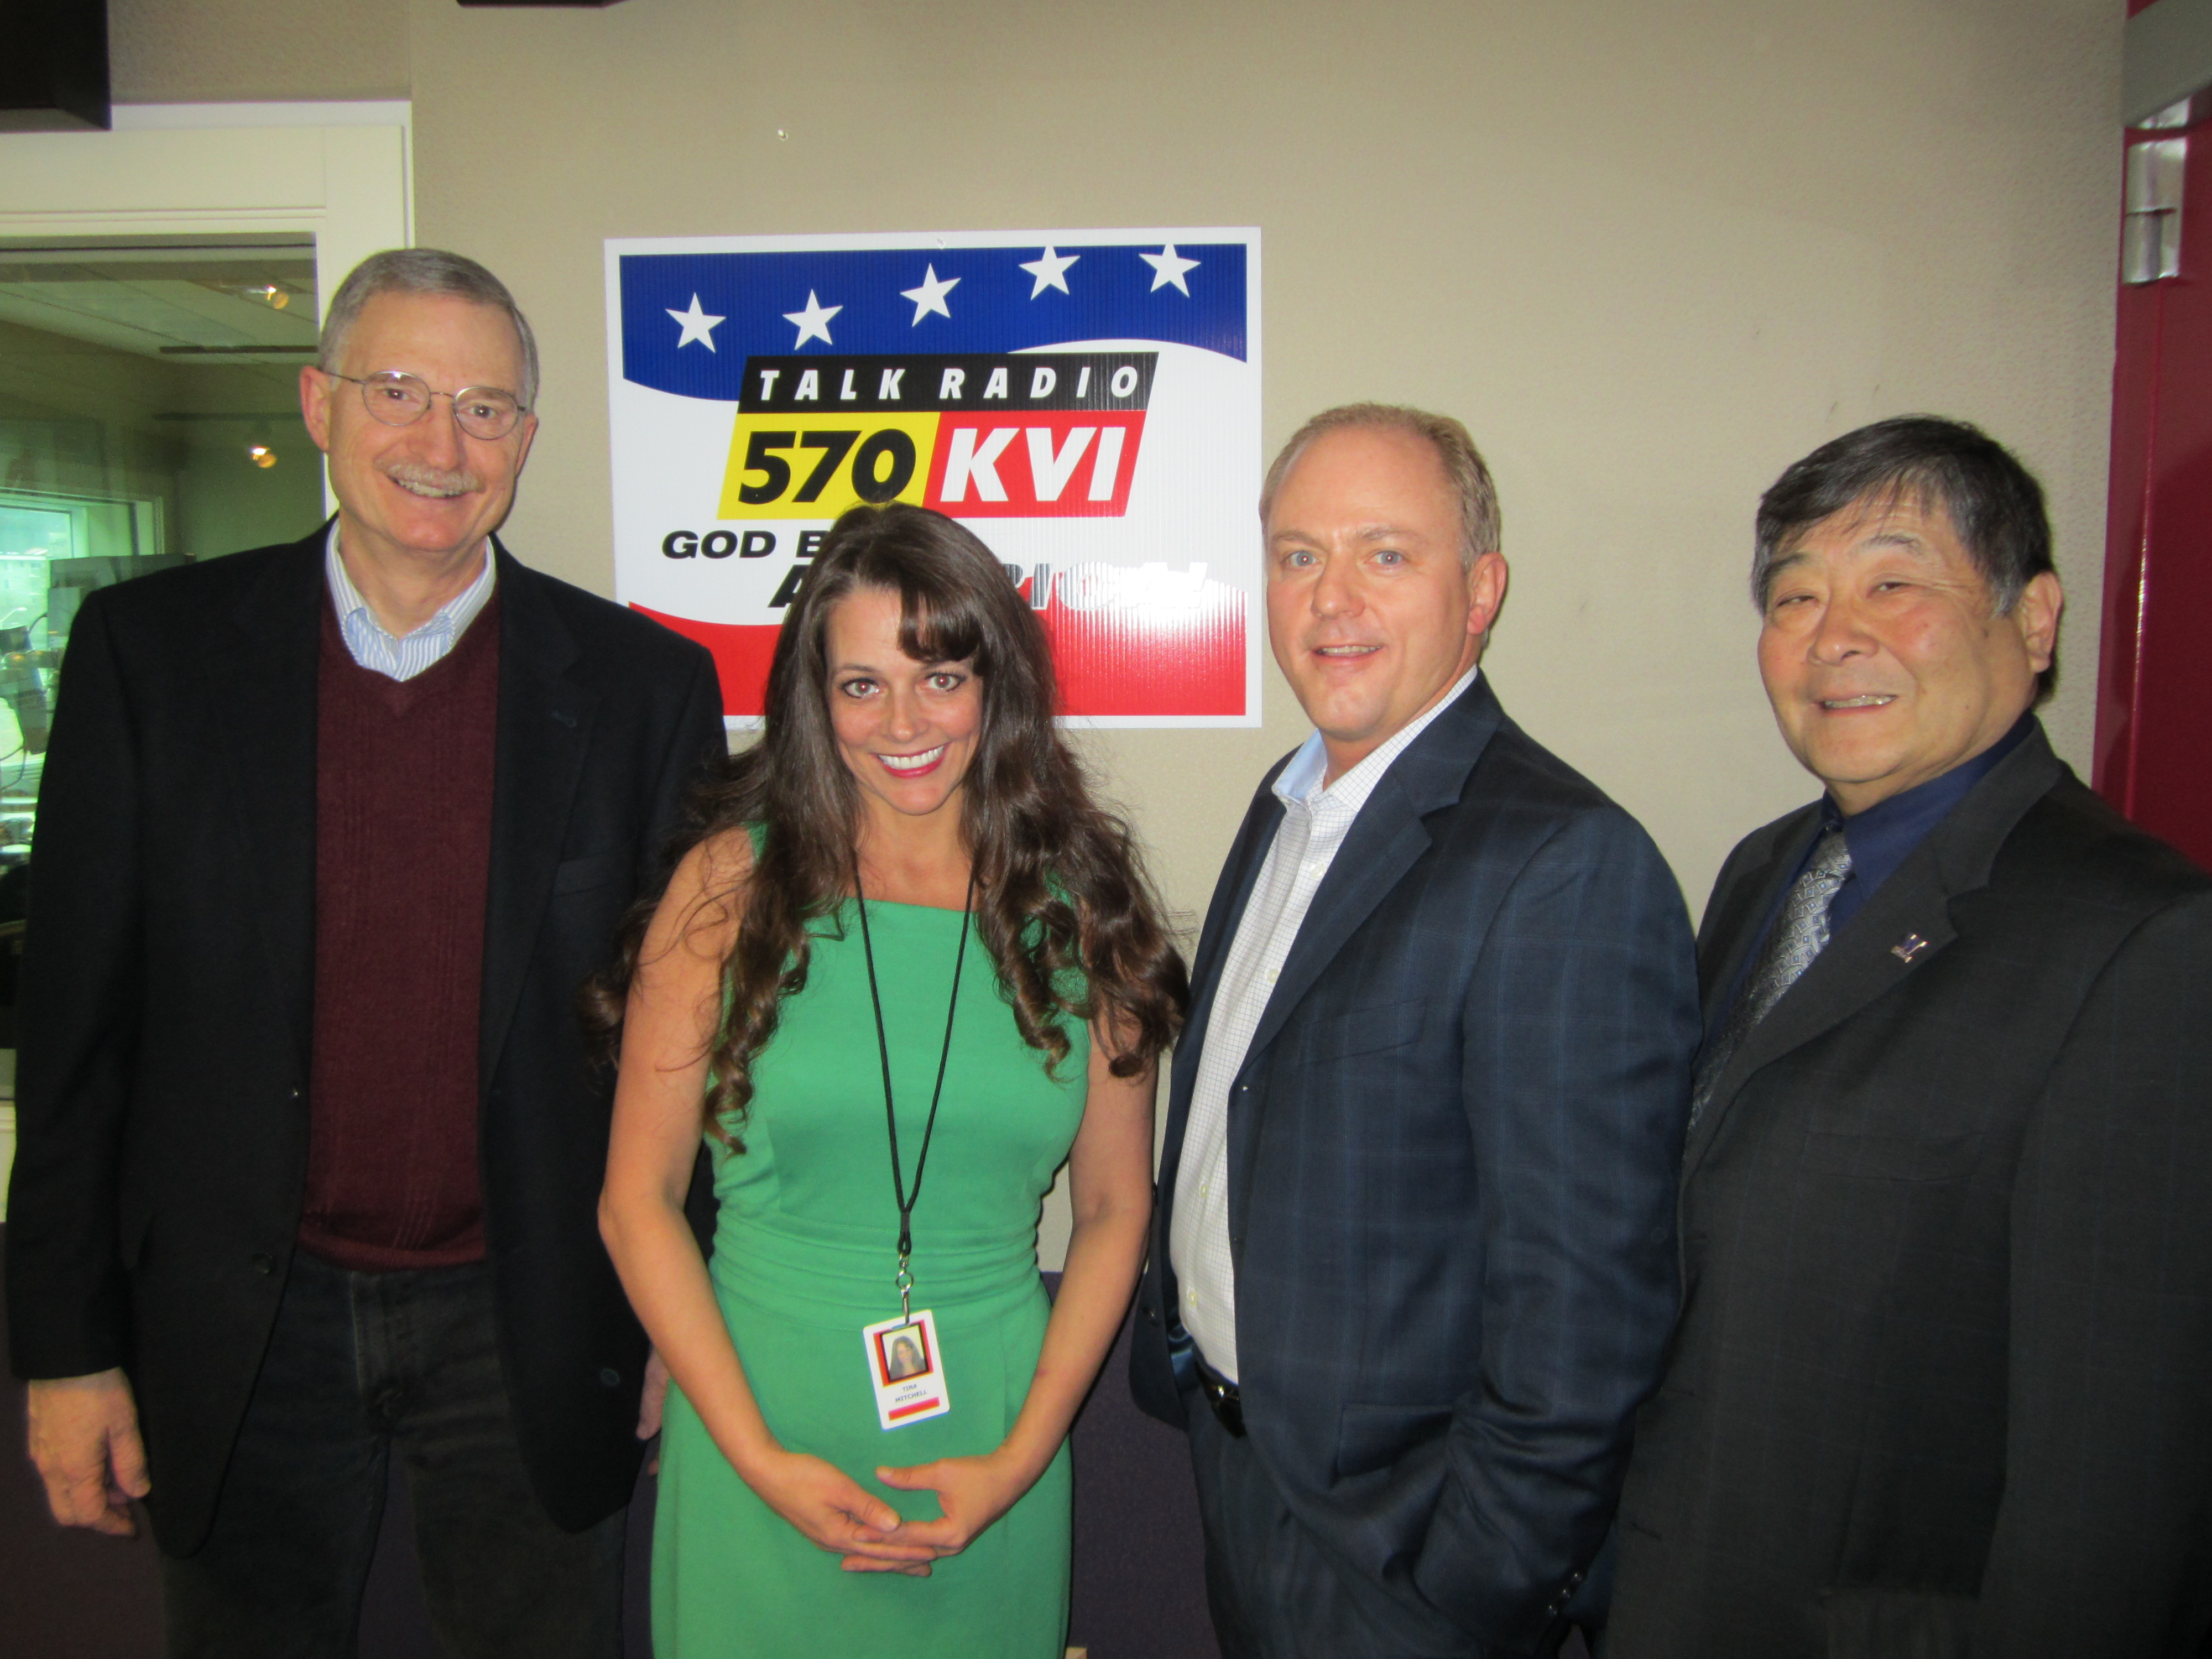 The Money Hour with Tina Mitchell 01/05/14. Lloyd Hara, Andy Landis, and Craig Gaudry